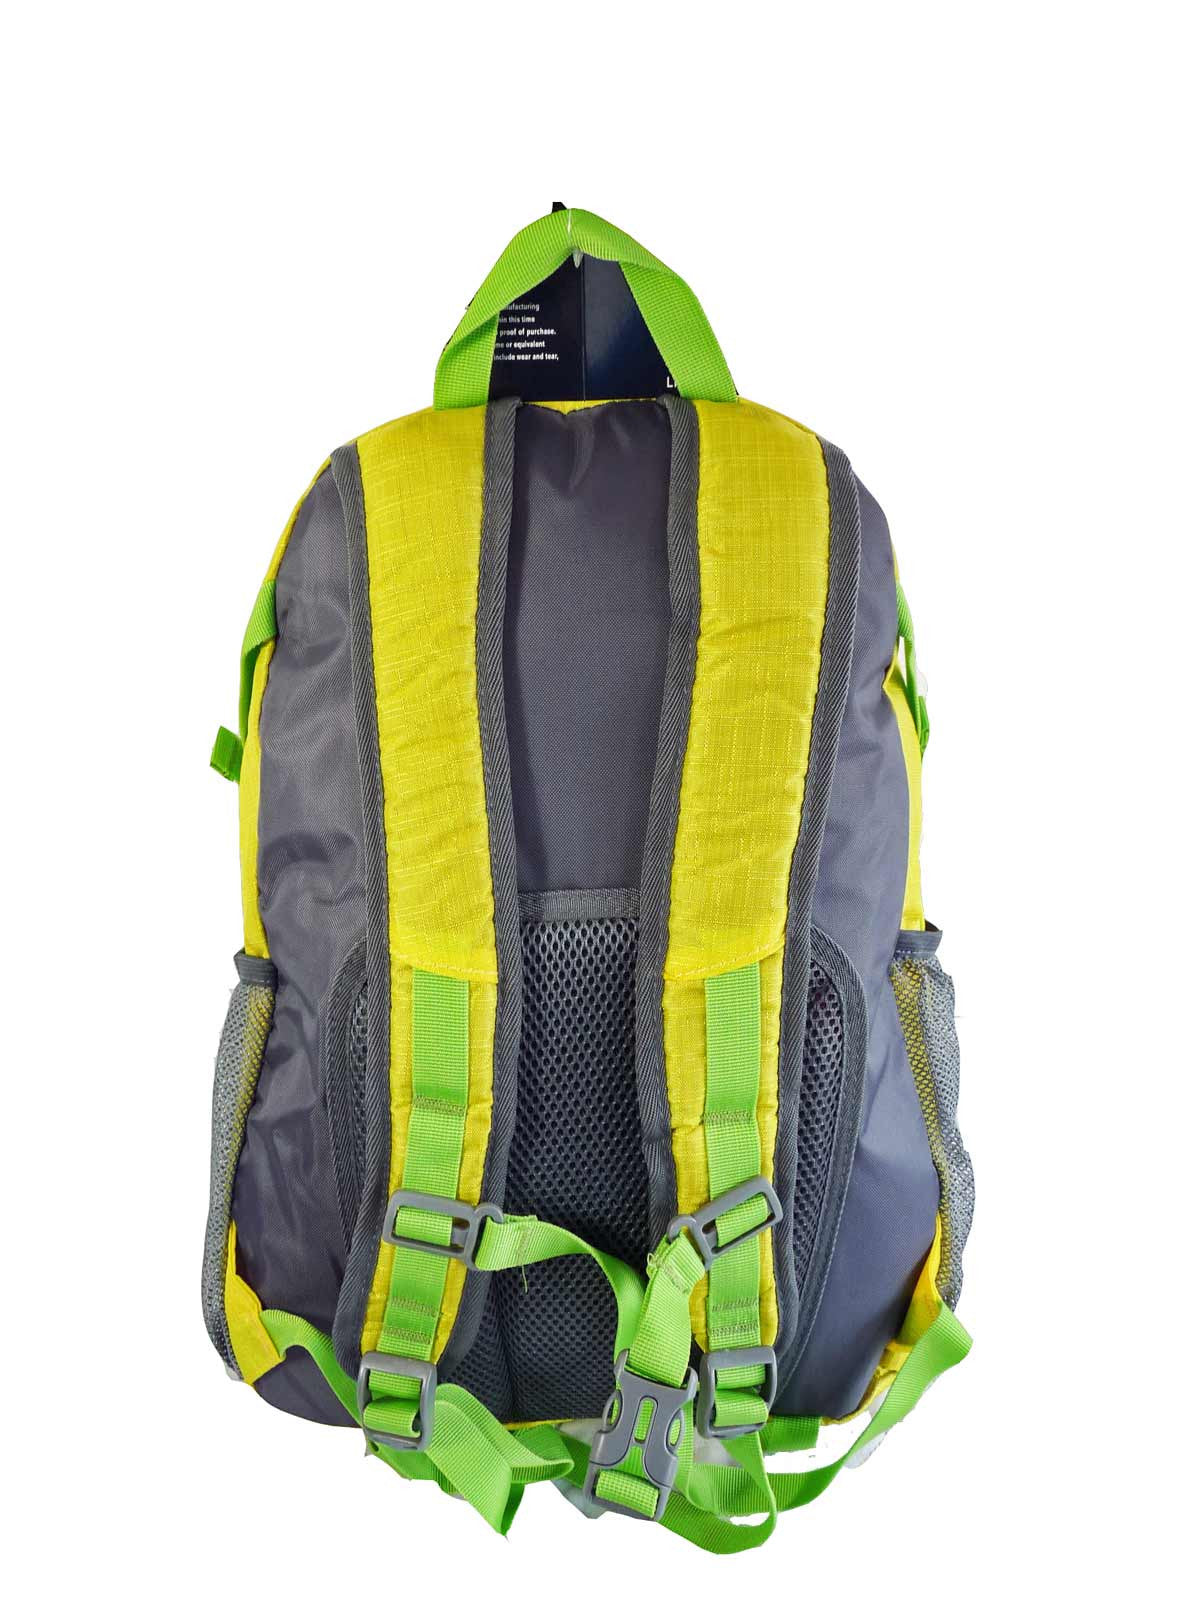 Hi High Viz Vis Backpack RL47Y Yellow Back View 2